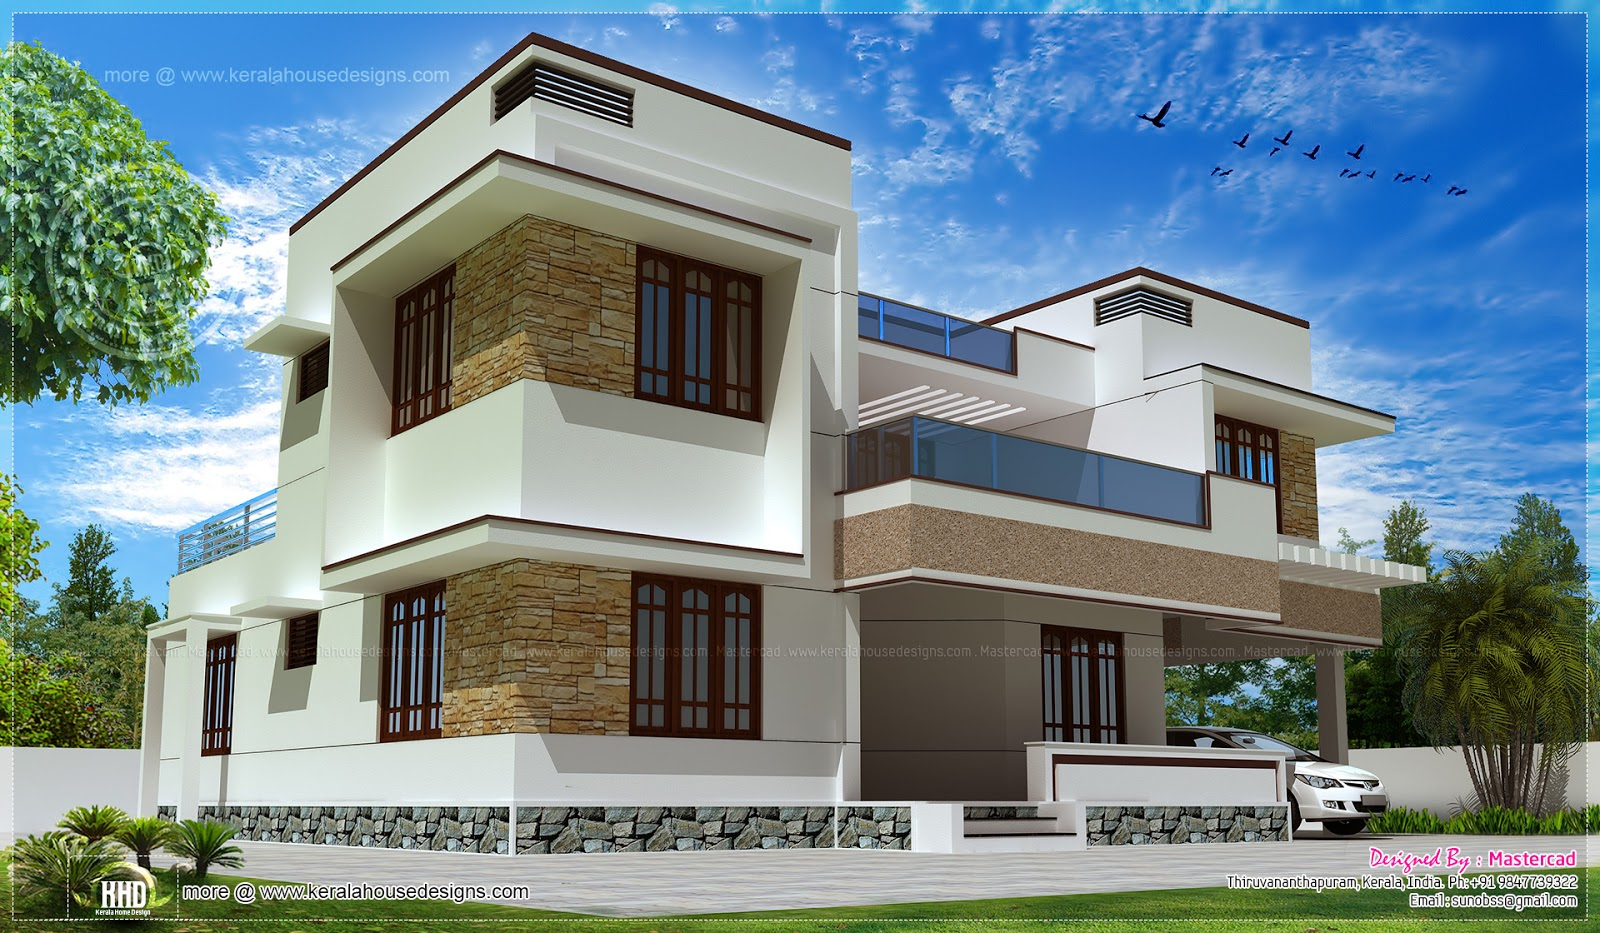 2 Bedroom House Plans Designs moreover Homewindowdesigns blogspot additionally Traditional Style Slope Roof 5 Bhk Kerala House Design furthermore 509778647 additionally B8b511e01423f19d. on modern box type house design